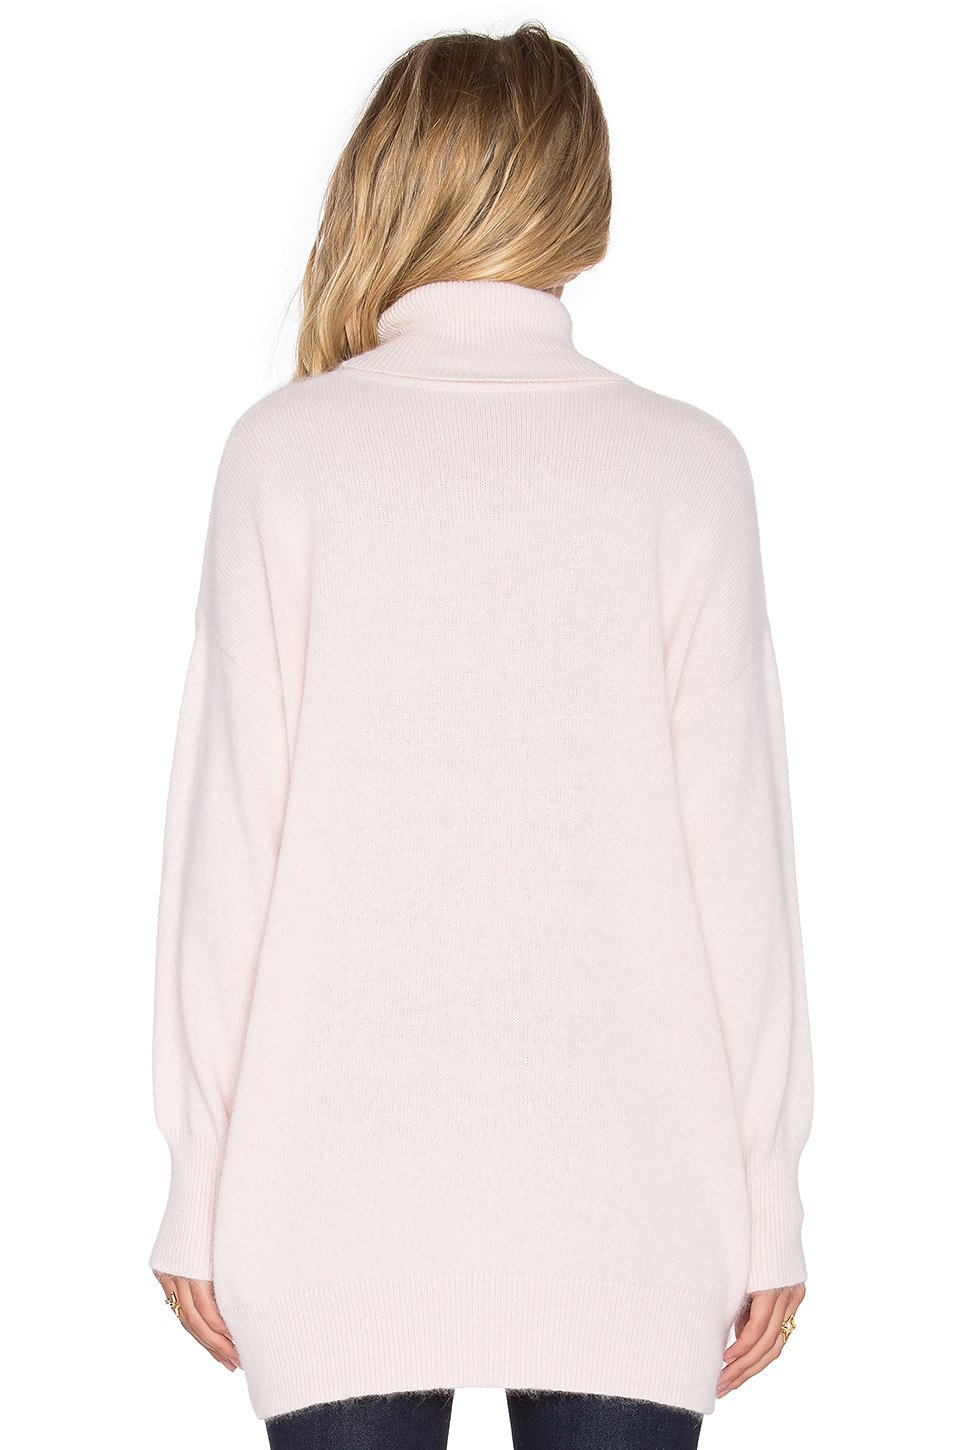 Nicholas Angora Oversized Turtleneck Sweater in Pink | Lyst